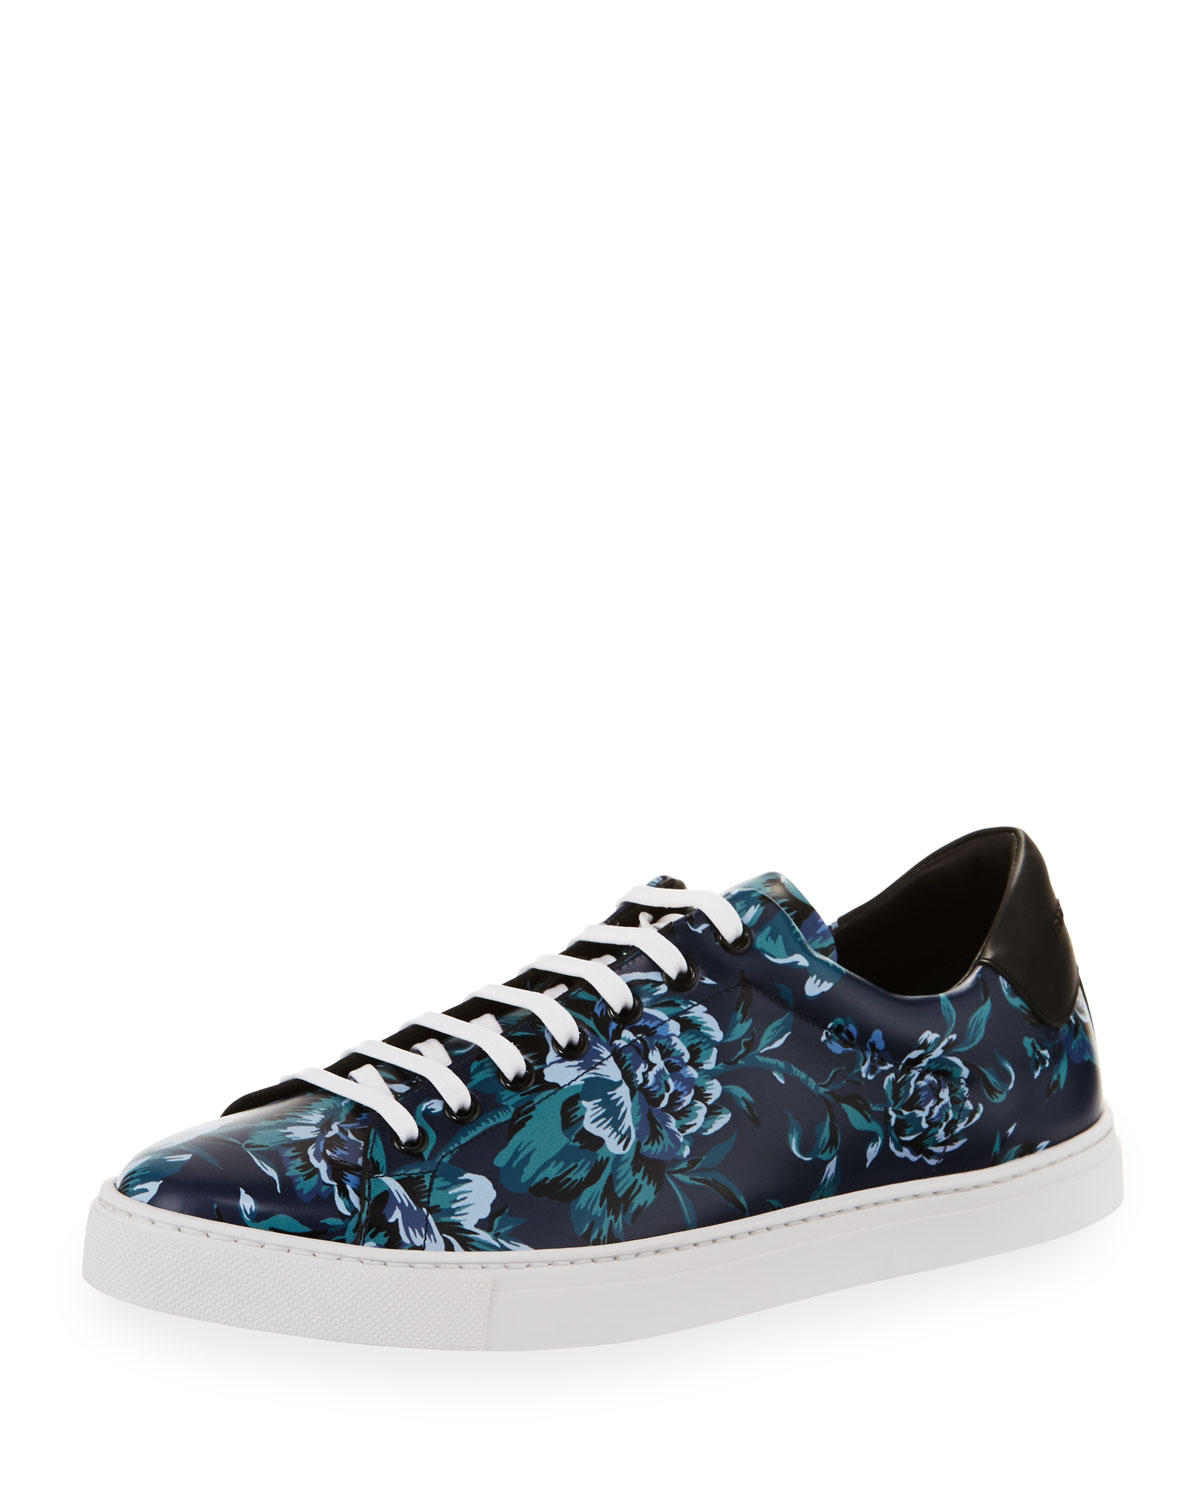 224a69821c13 Burberry Albert Floral-Print Leather Low-Top Sneakers